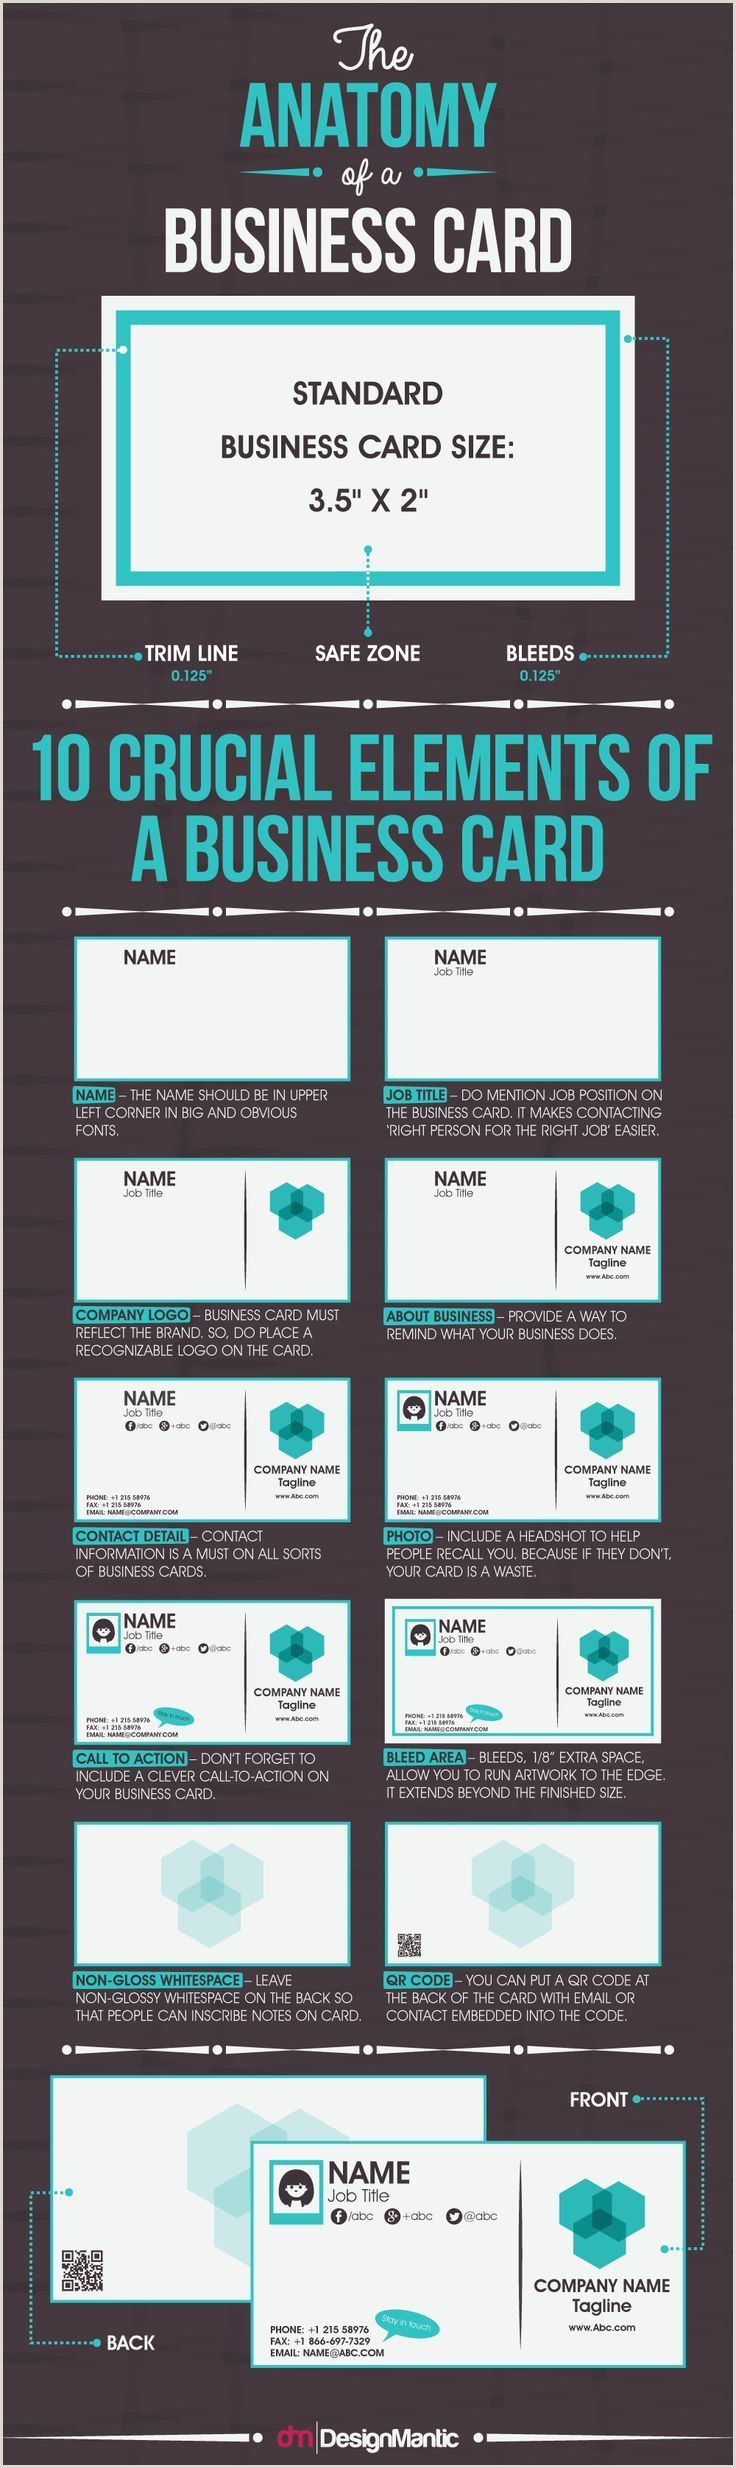 Business Card Information To Include The Anatomy A Business Card Infographic Business Job